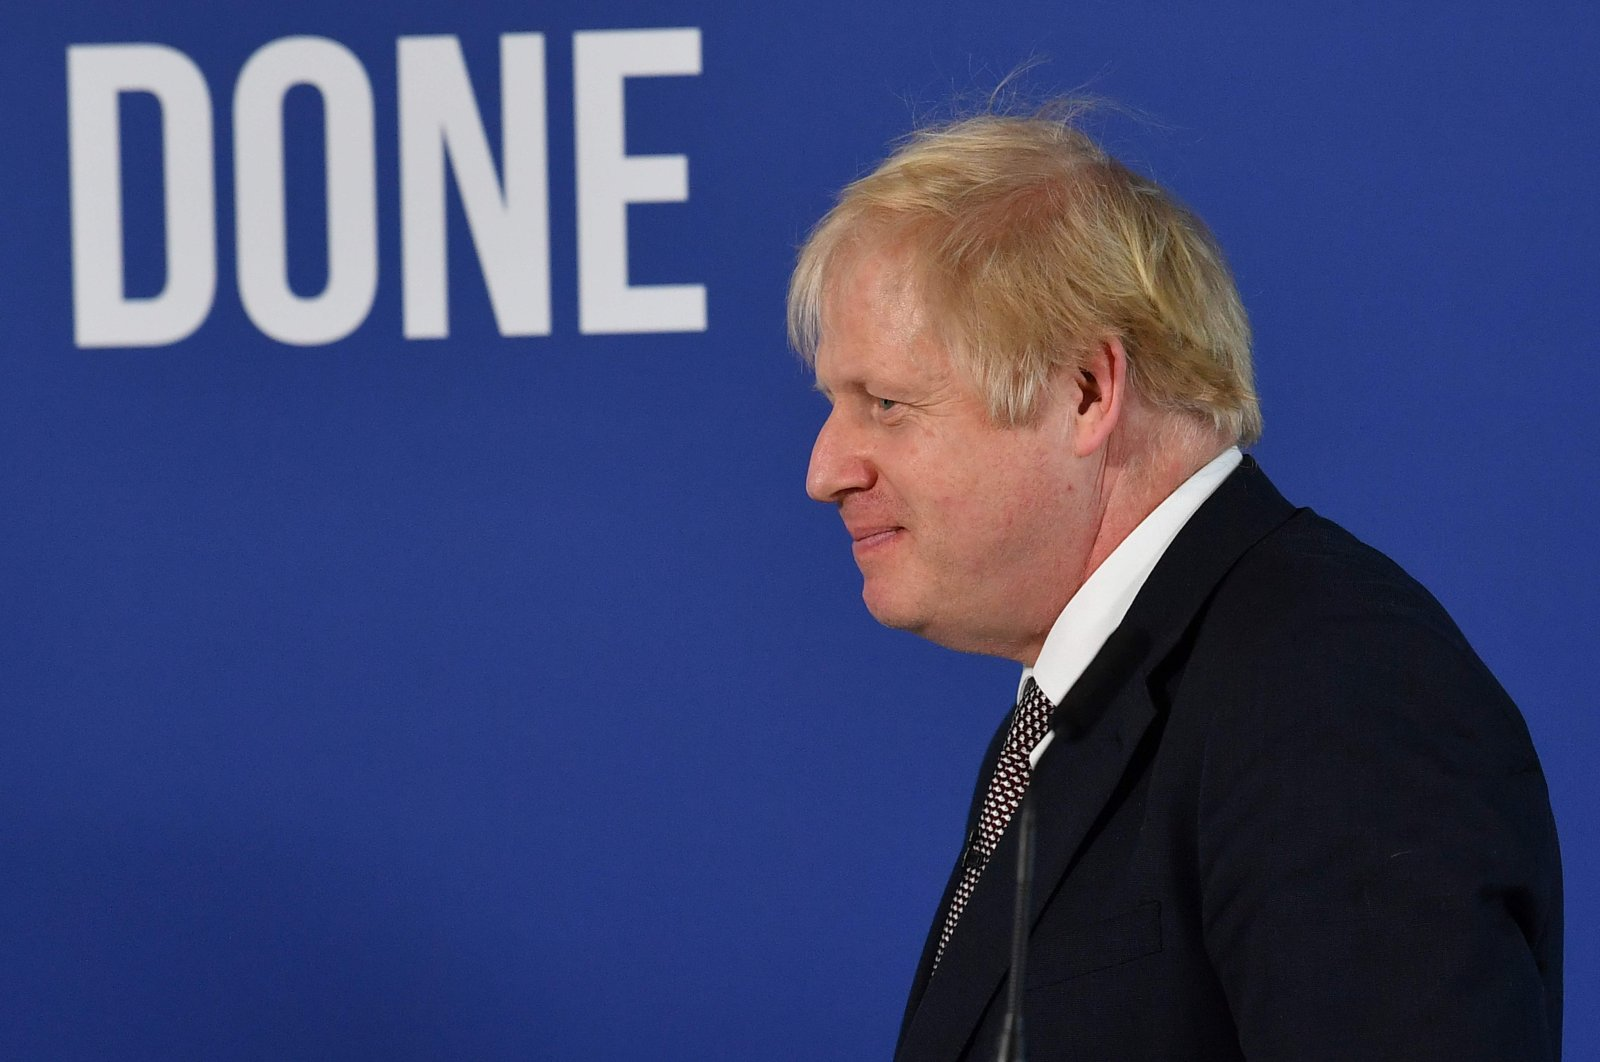 Britain's Prime Minister and Conservative leader Boris Johnson leaves the podium at the end of a press conference, London, Nov. 29, 2019. (AFP Photo)